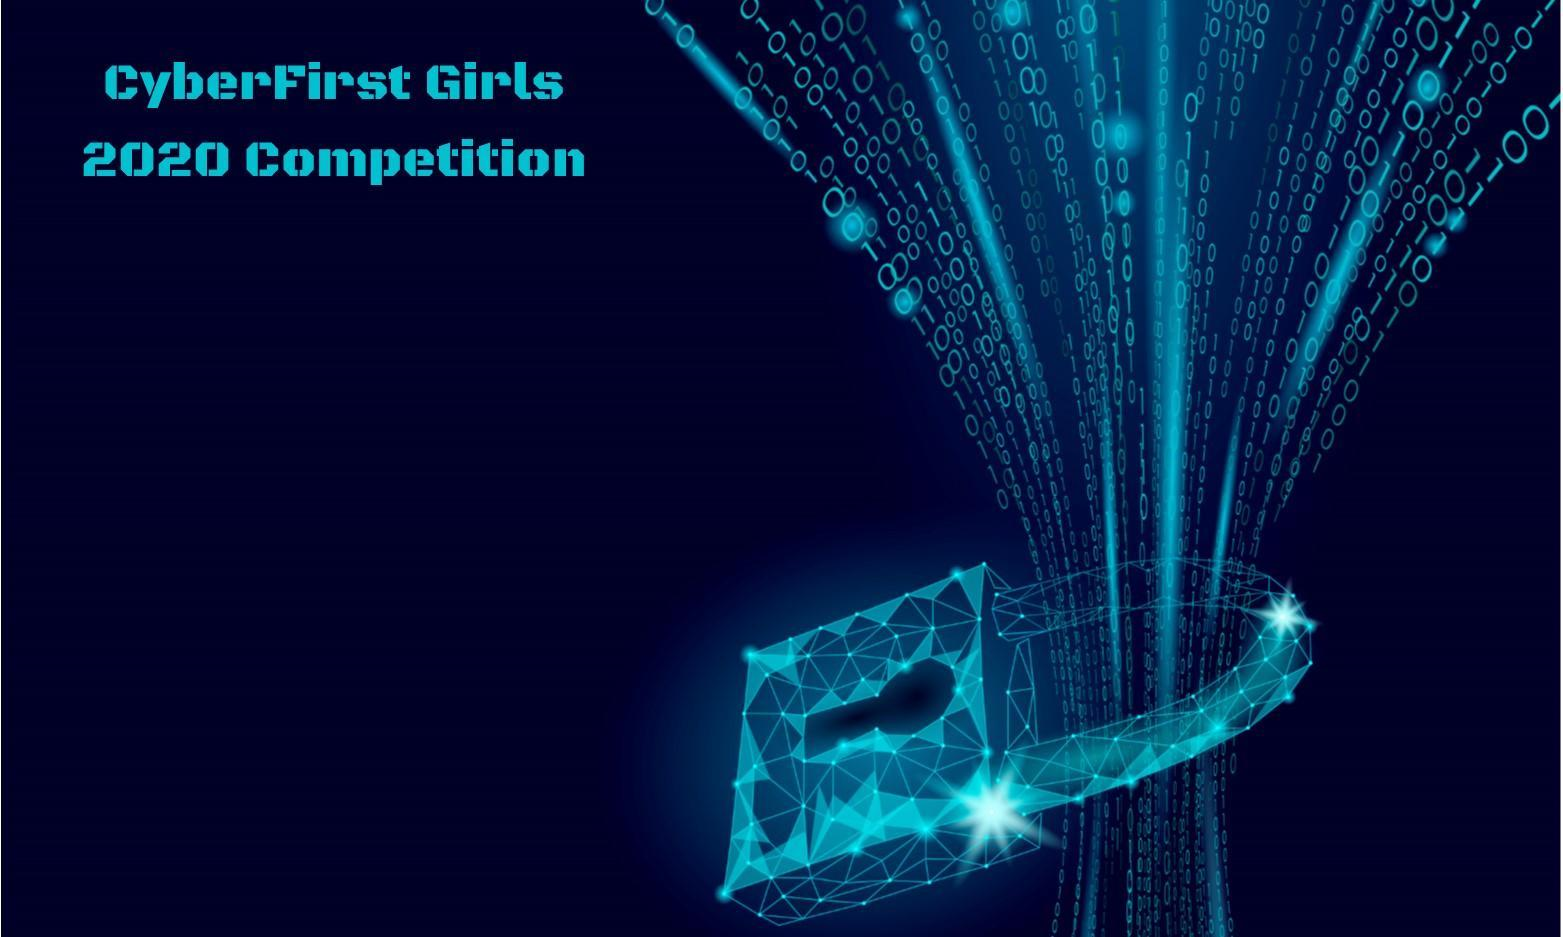 Registration Now Open for the CyberFirst Girls 2020 Competition